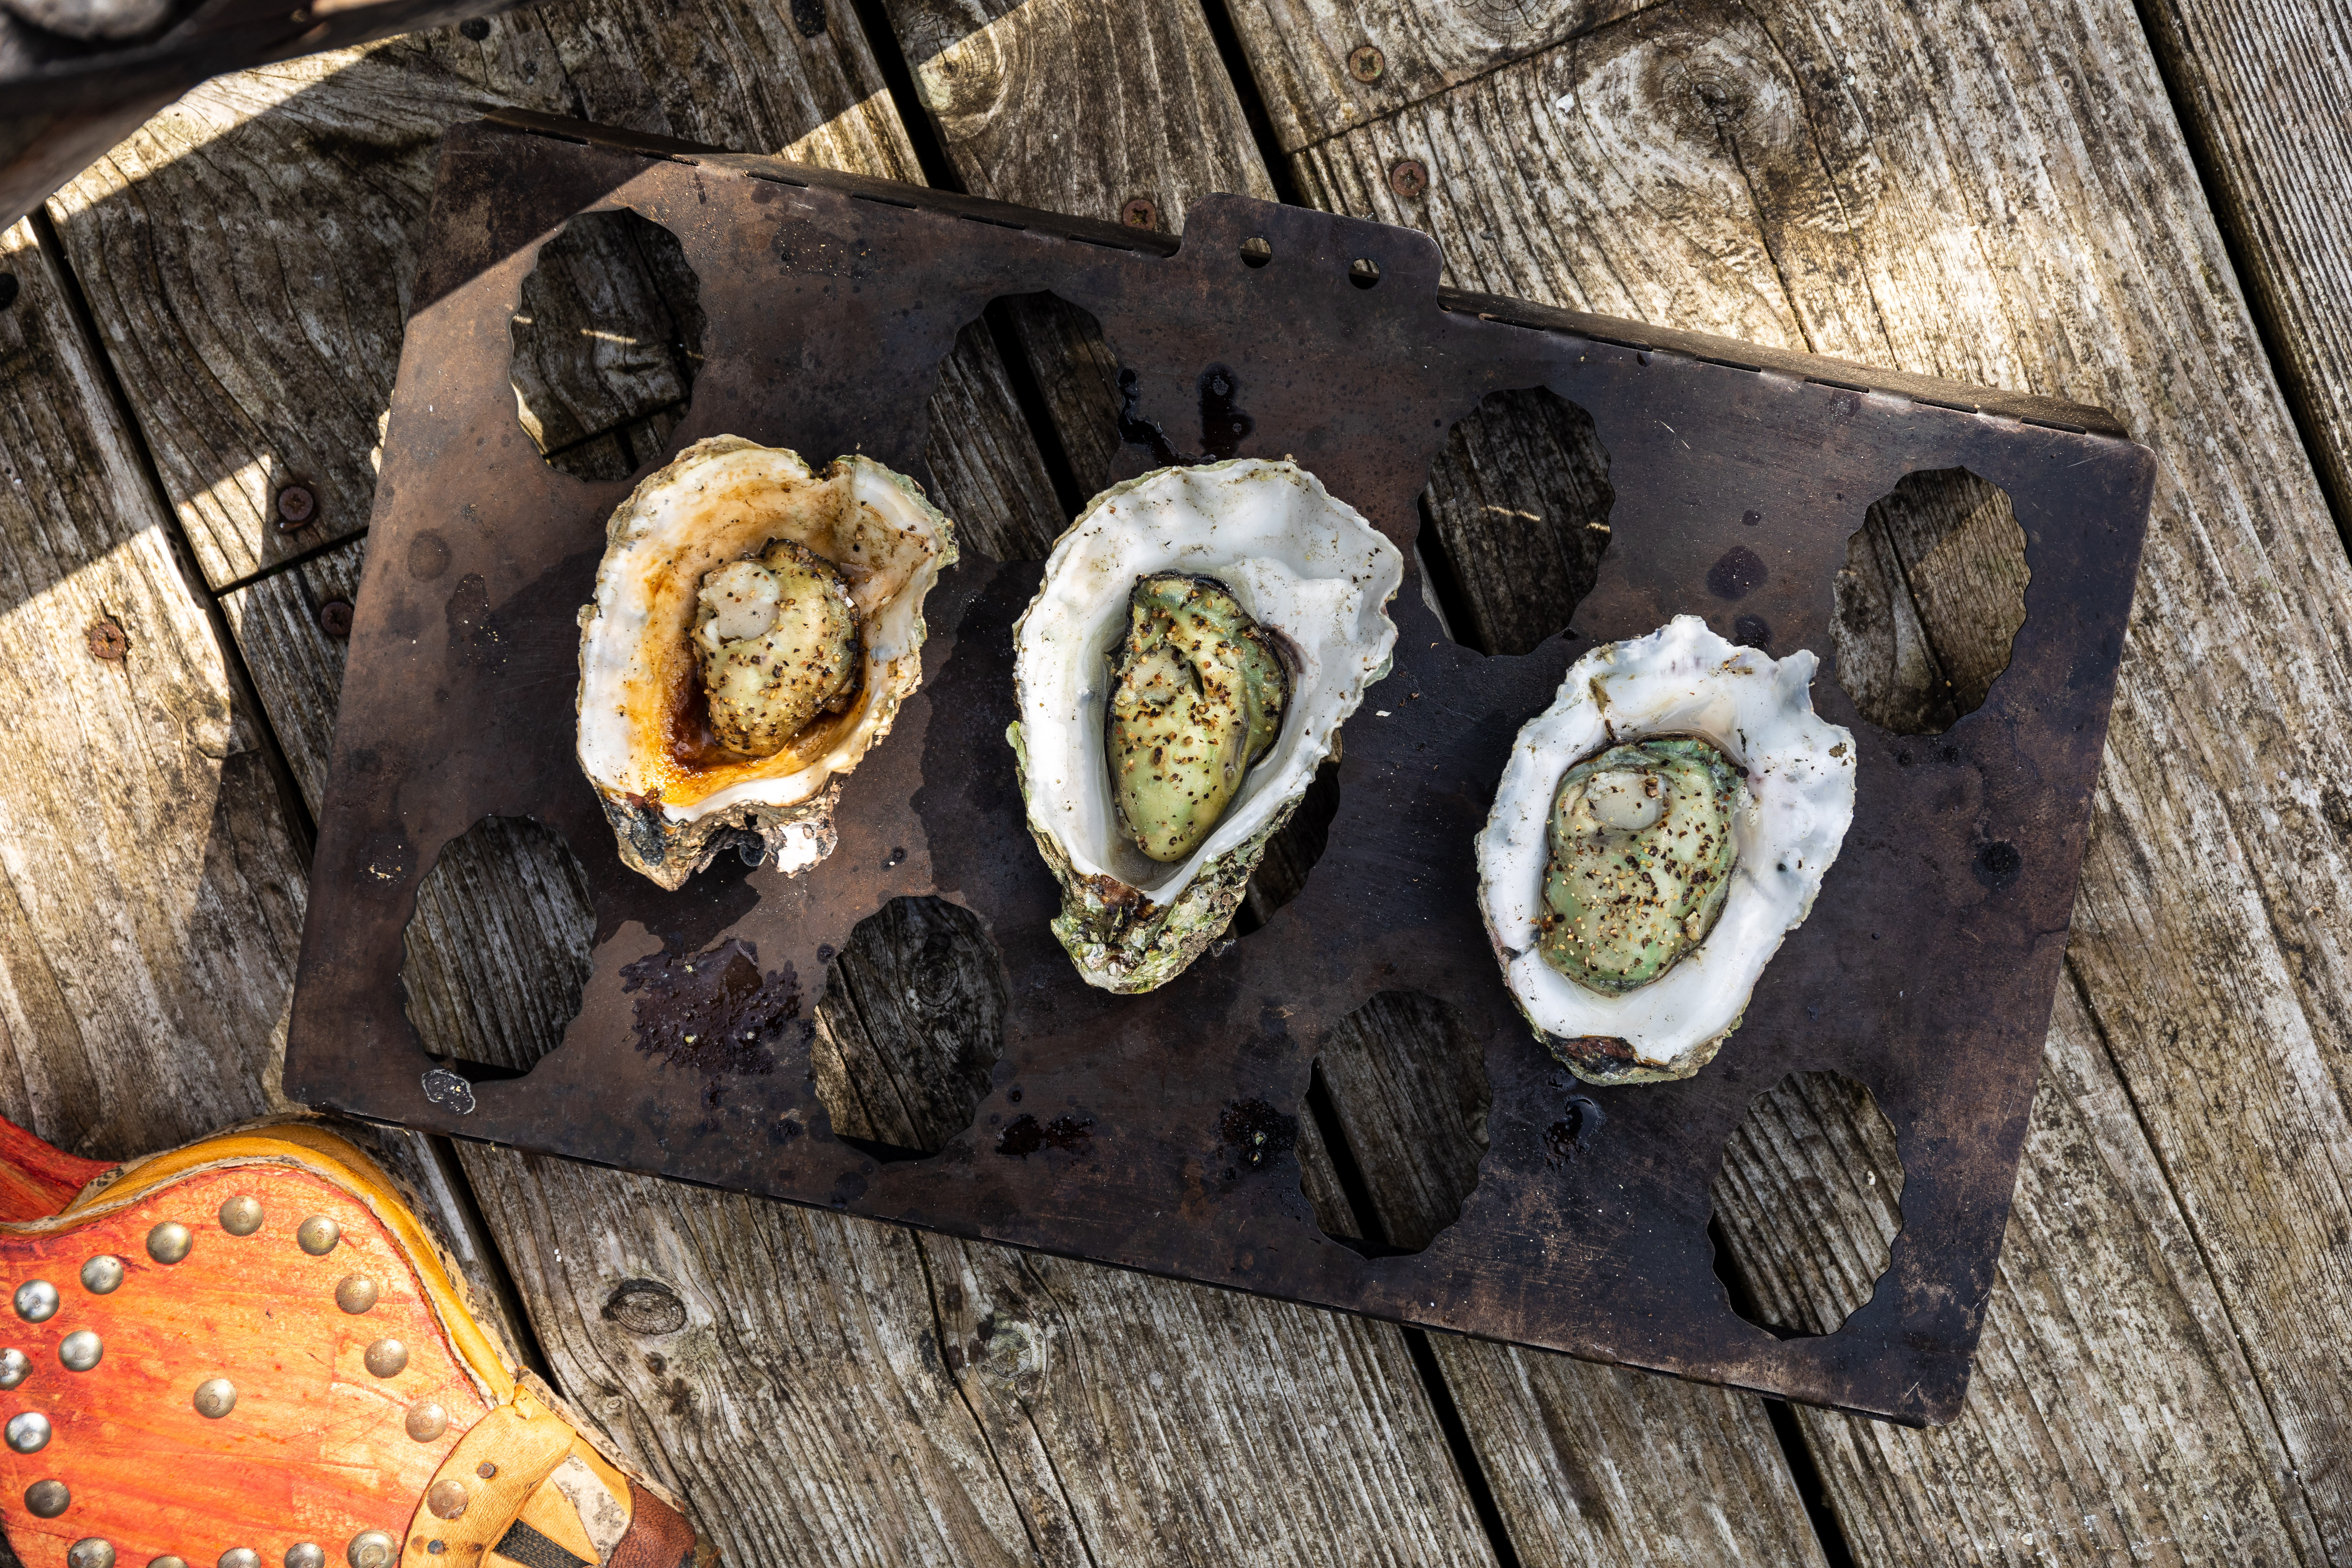 BBQ Oysters by Mike Searle